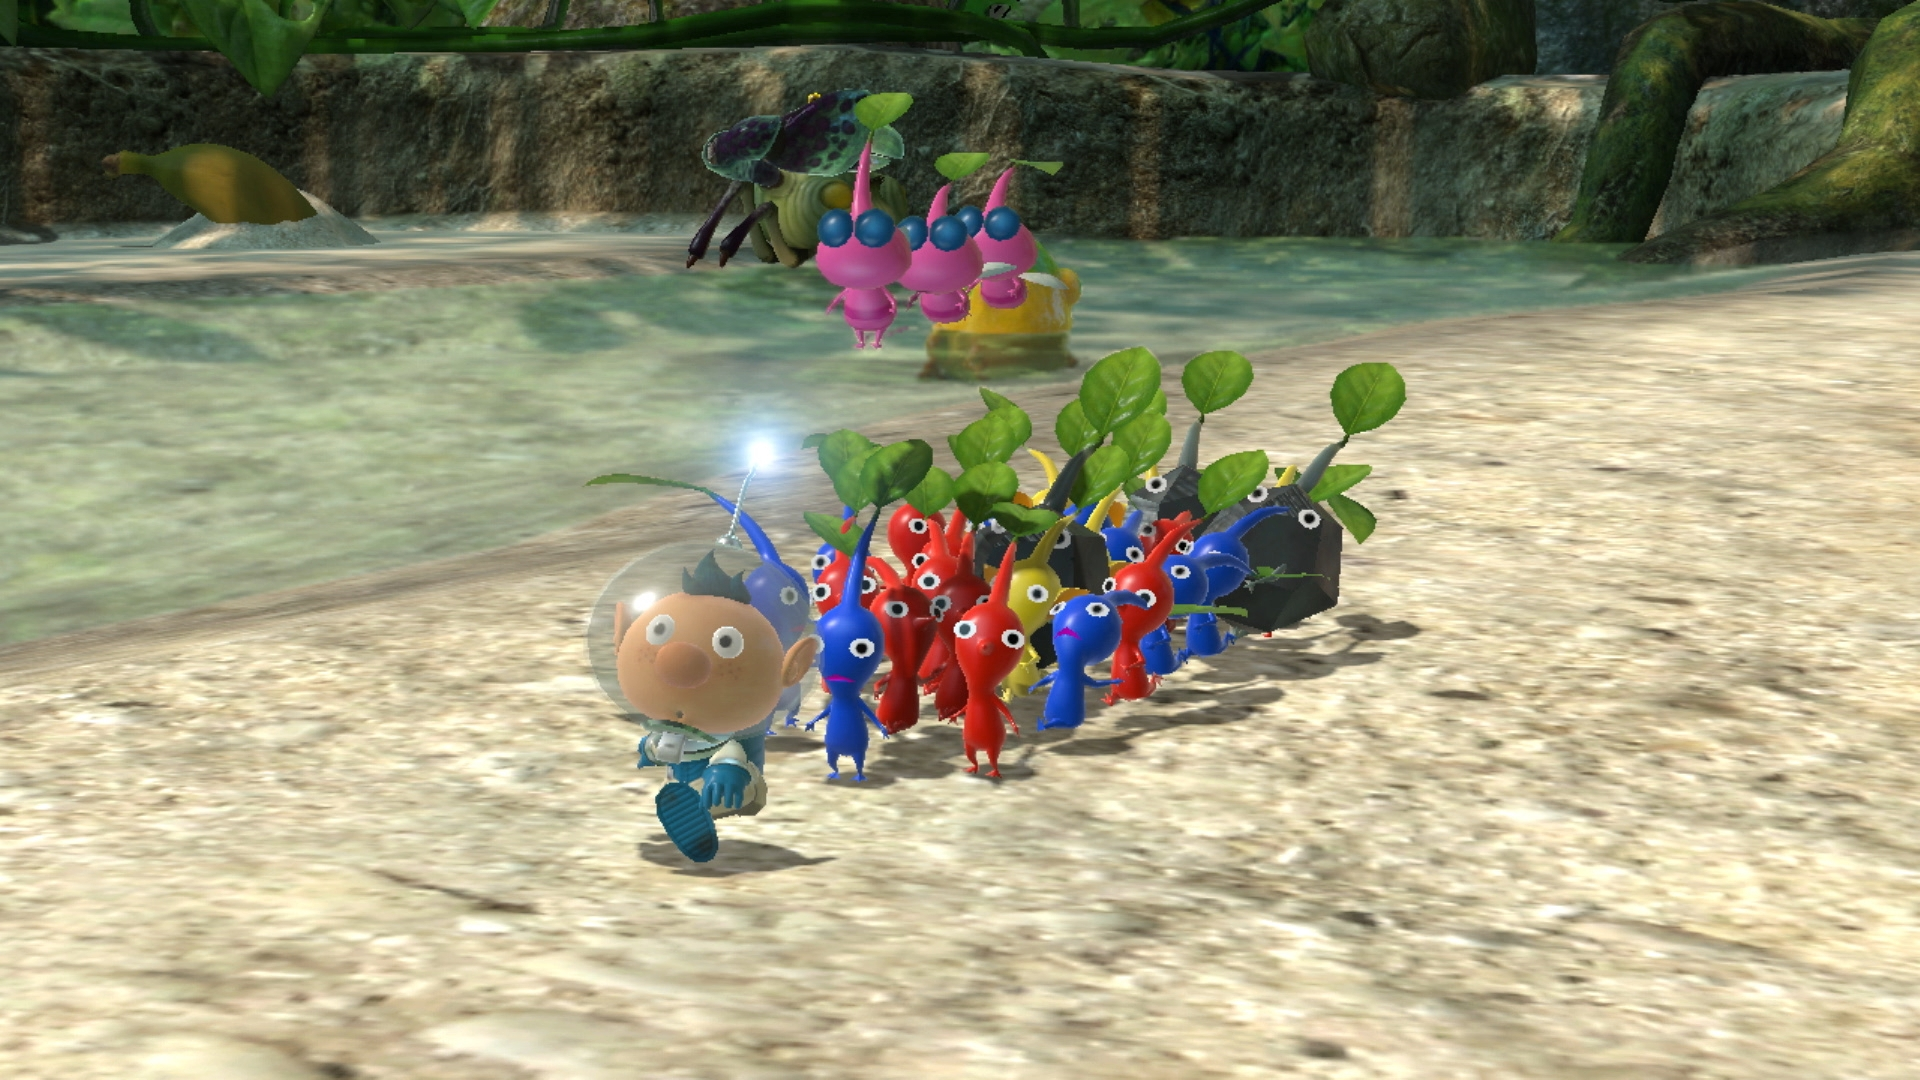 Pikmin 3 Deluxe Brings A Beloved Wii U Gem To Switch On October 30th Engadget